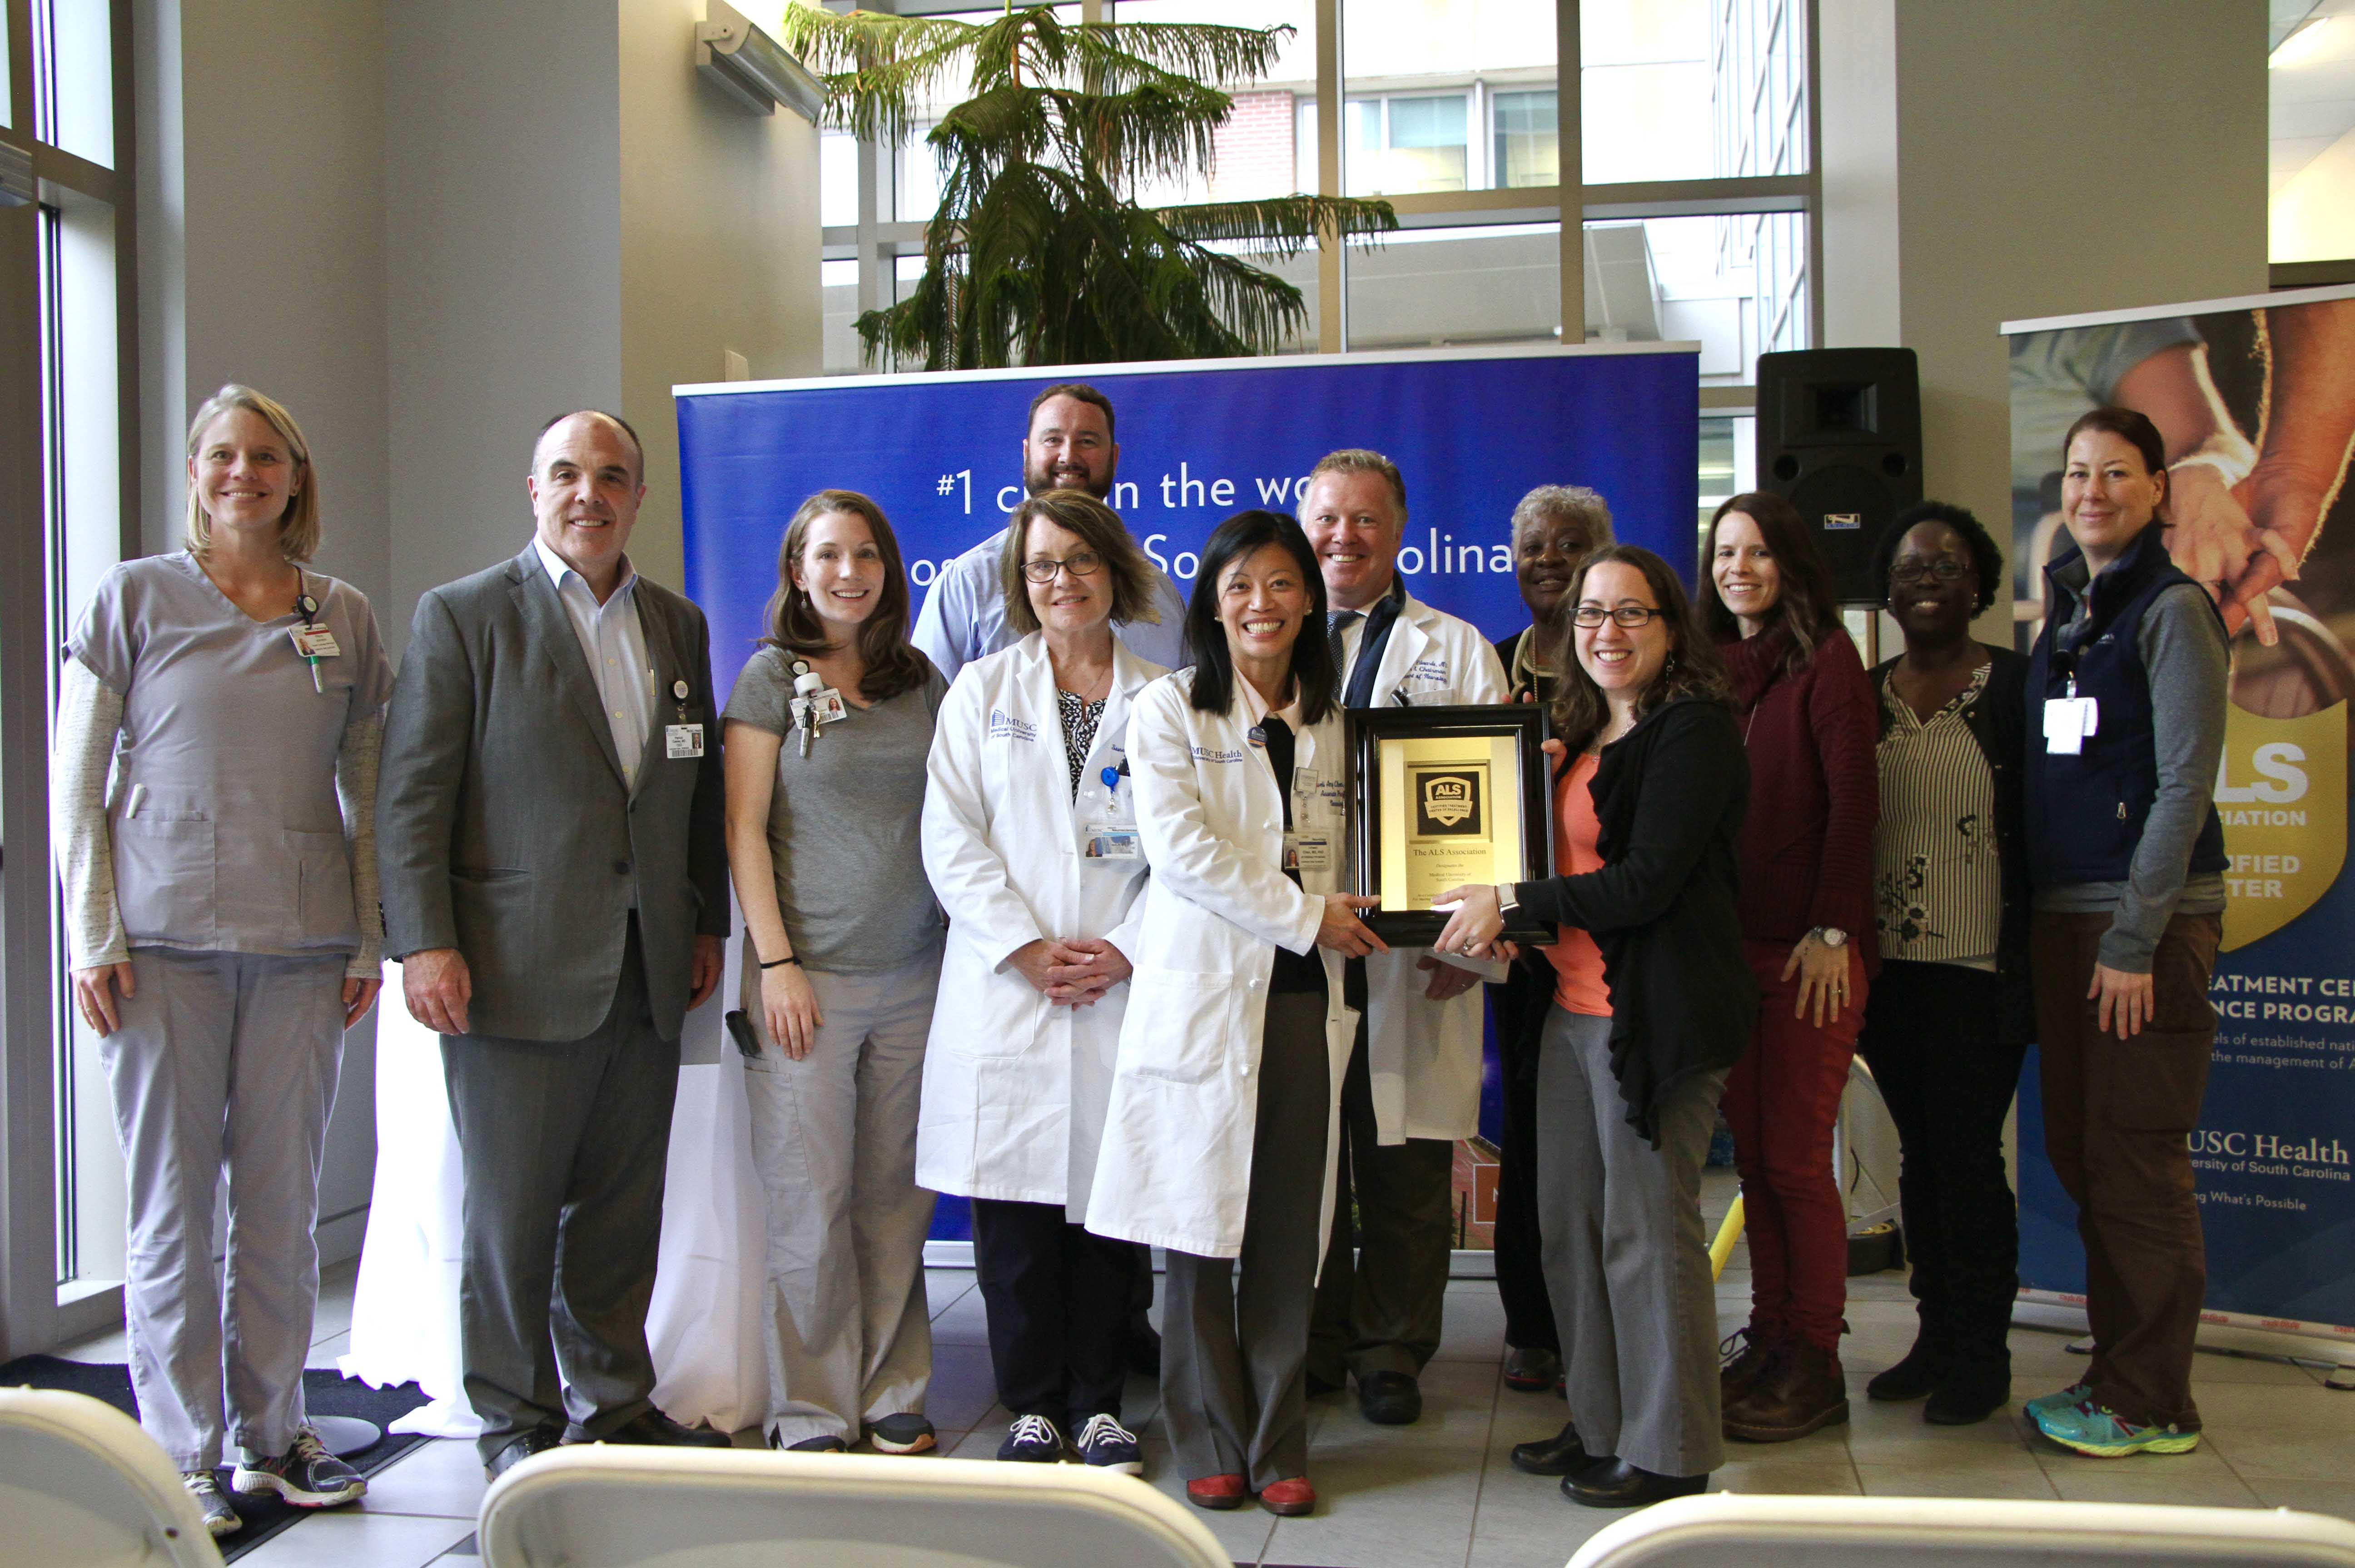 Members of MUSC's team as well as those from ALSA gather to pose for a photo holding a plaque commemorating MUSC being designated a Center of Excellence by the ALSA.